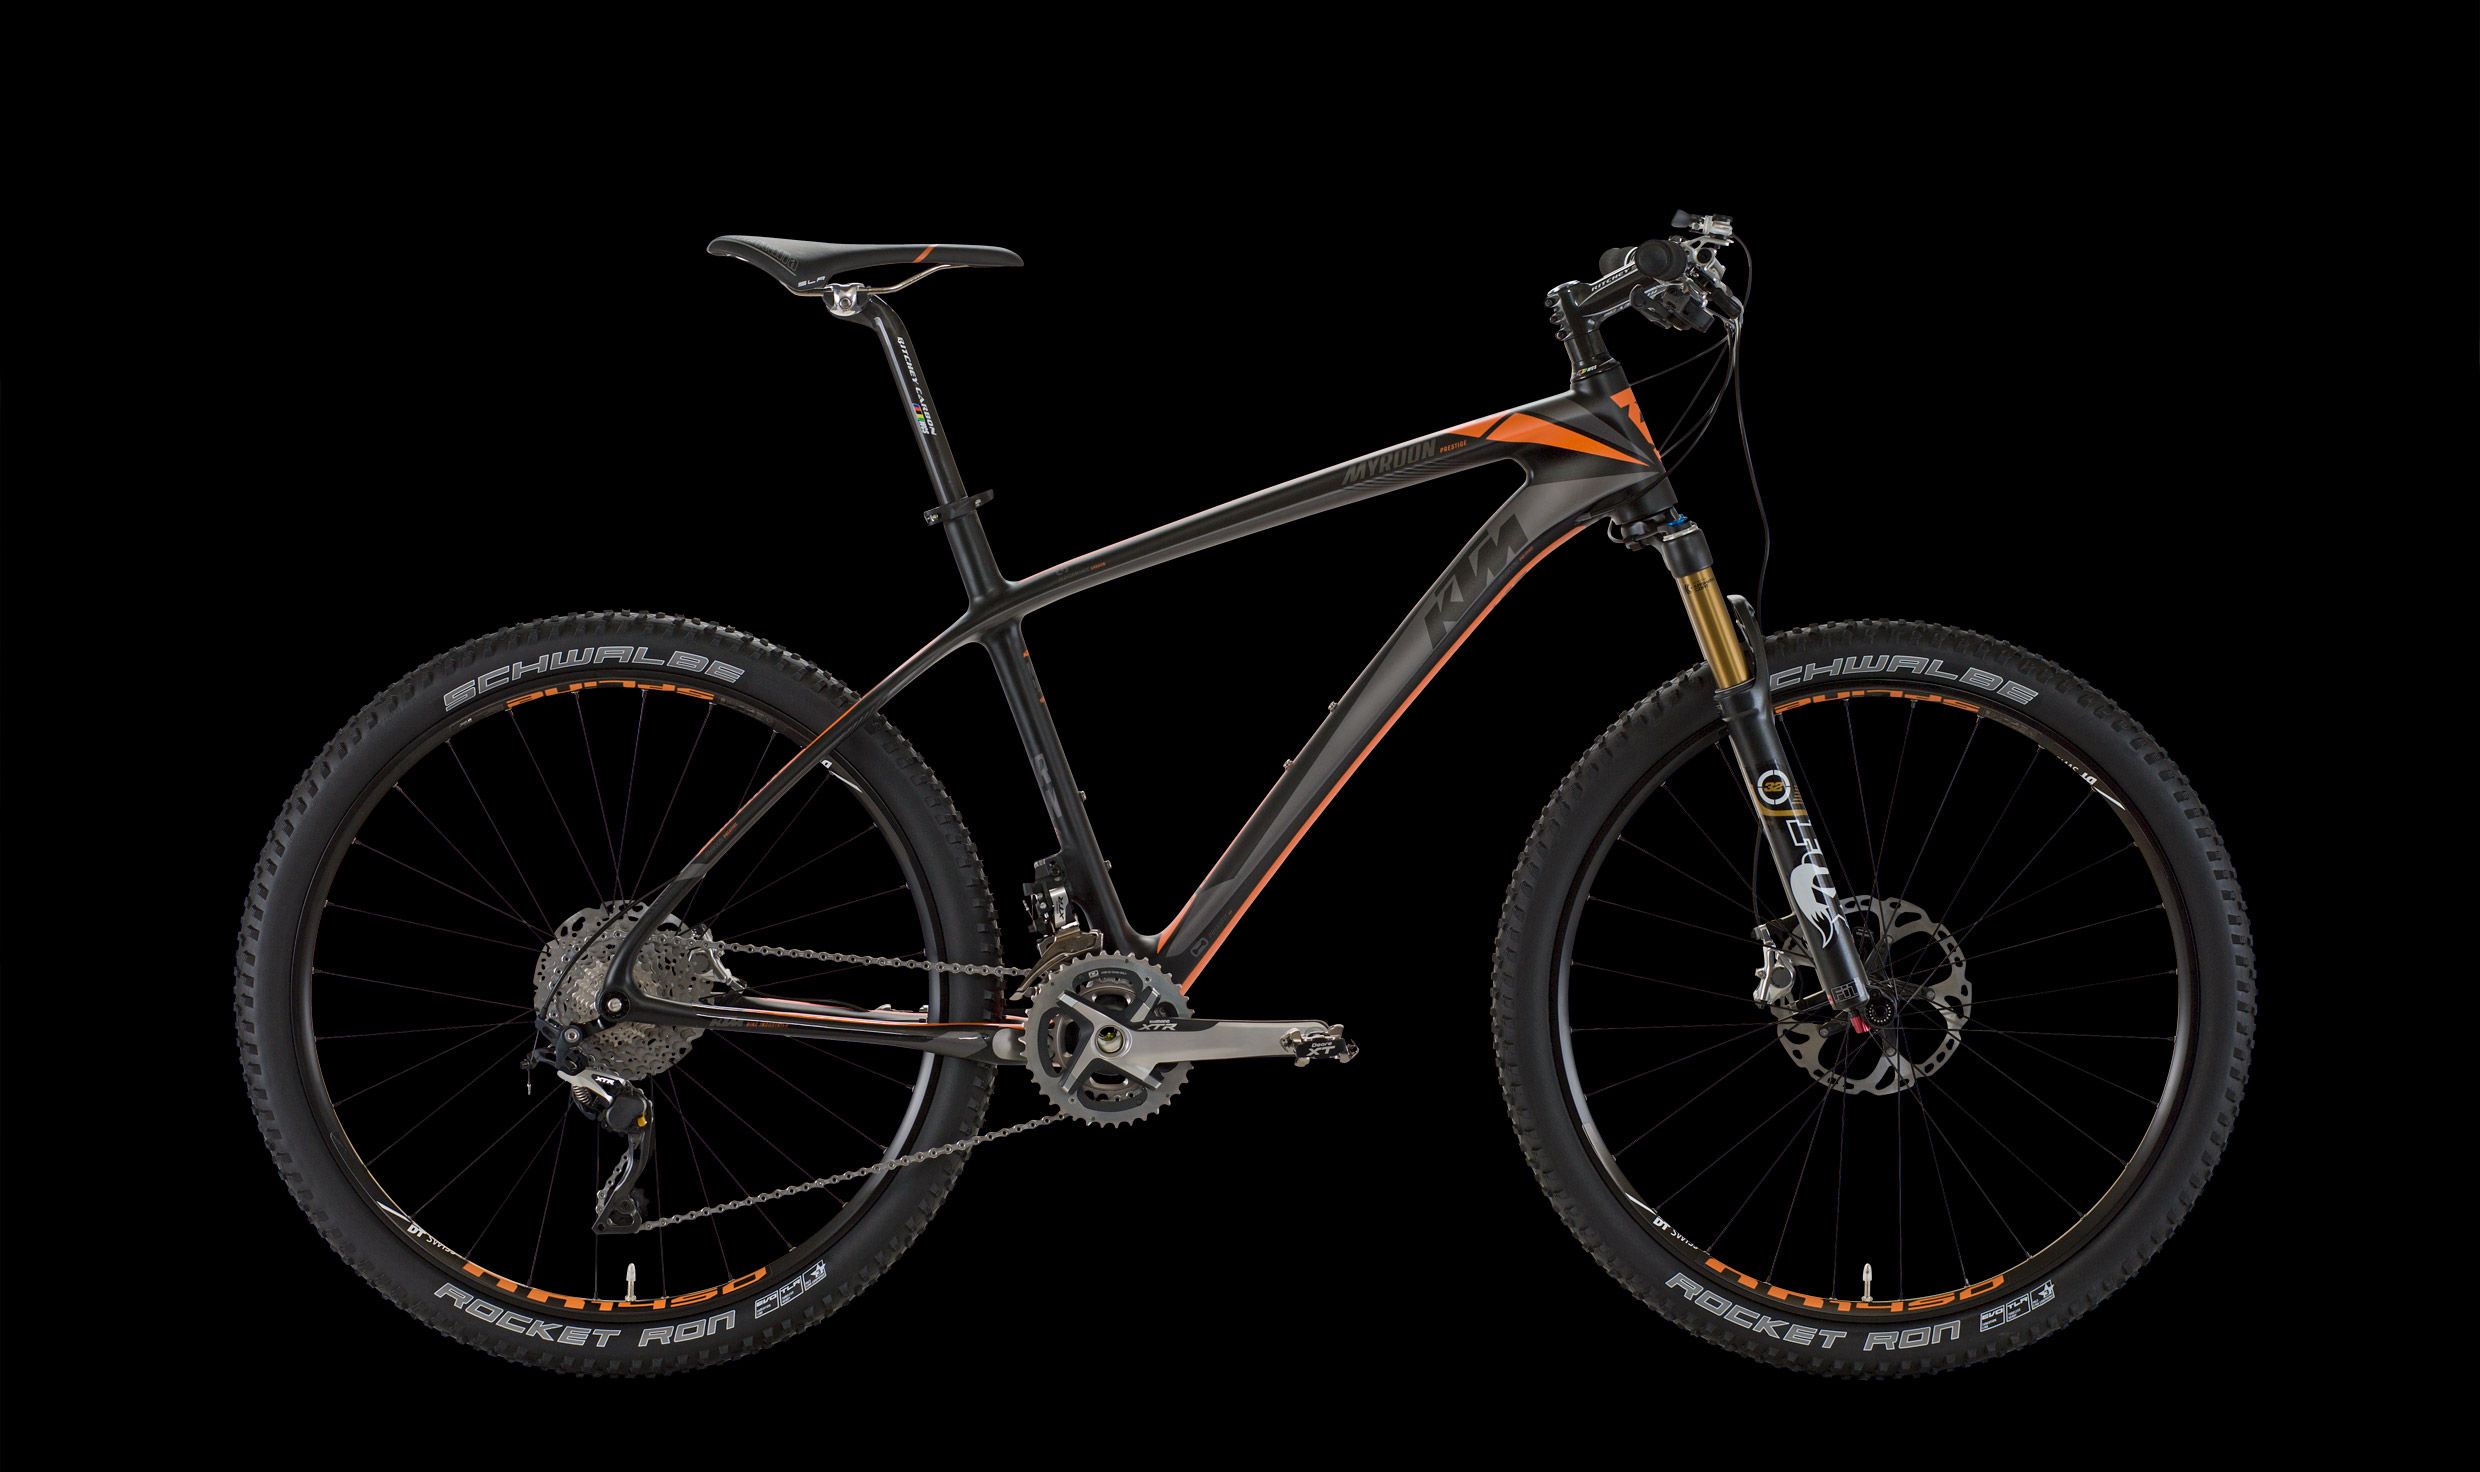 Ktm Myroon 26 Prestige 2013 Review The Bike List